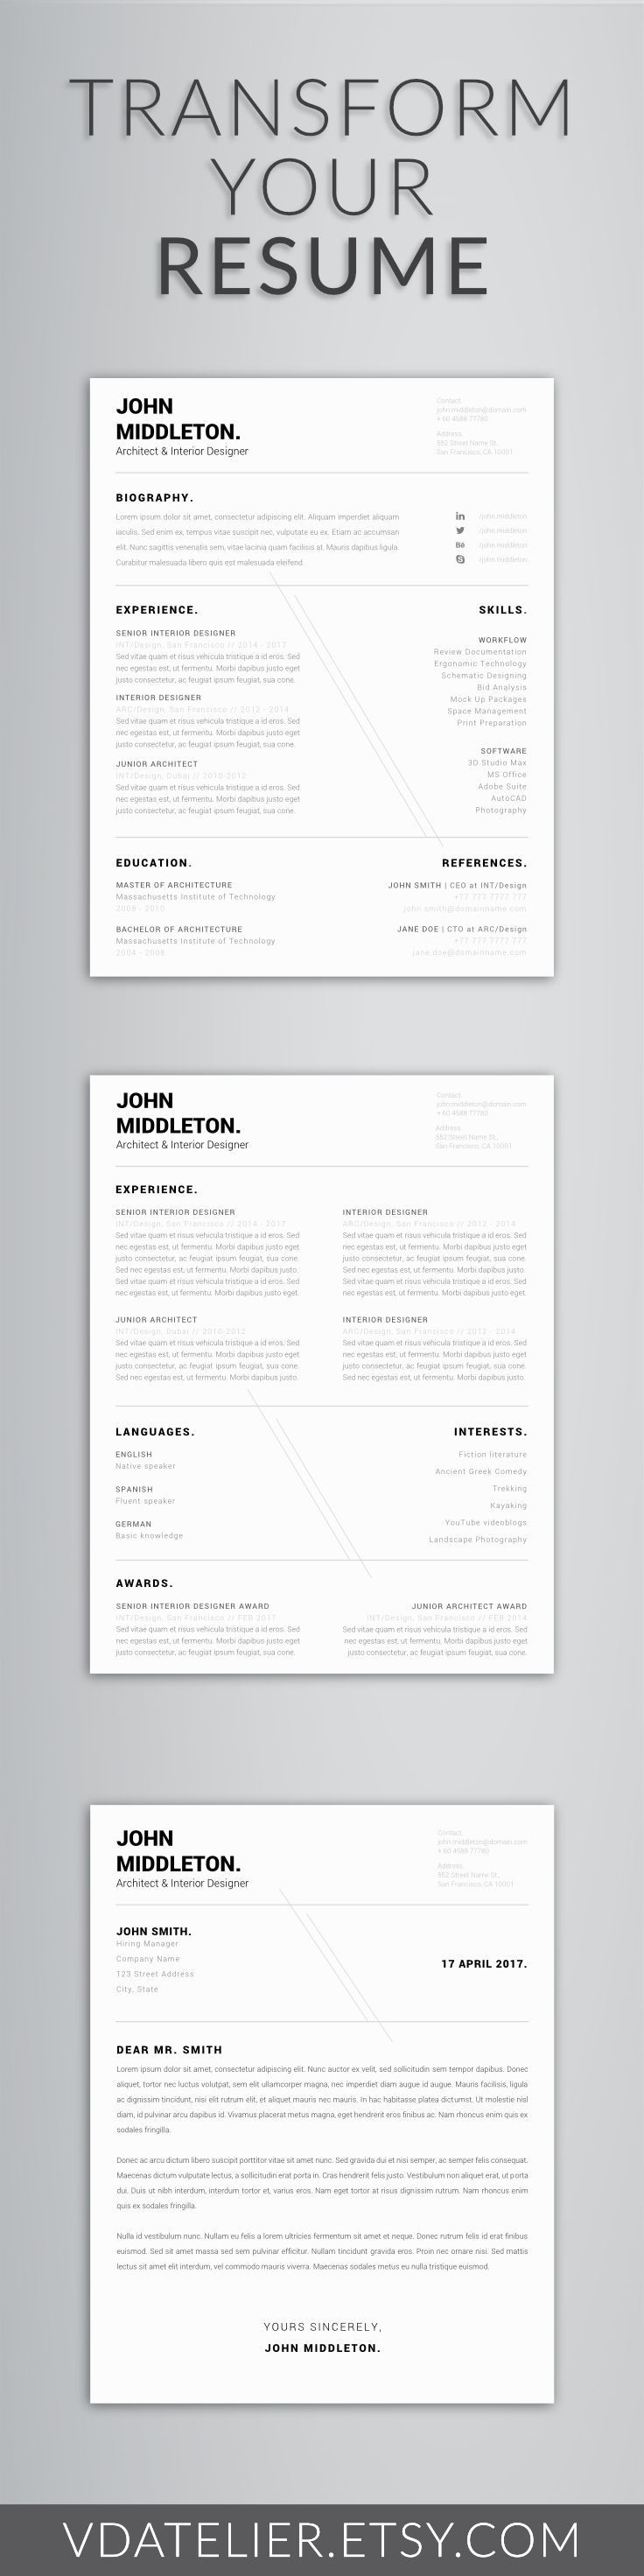 Interior Design Resume Examples - Interior Design Resumes Best Resume Samples Doc – Template Free